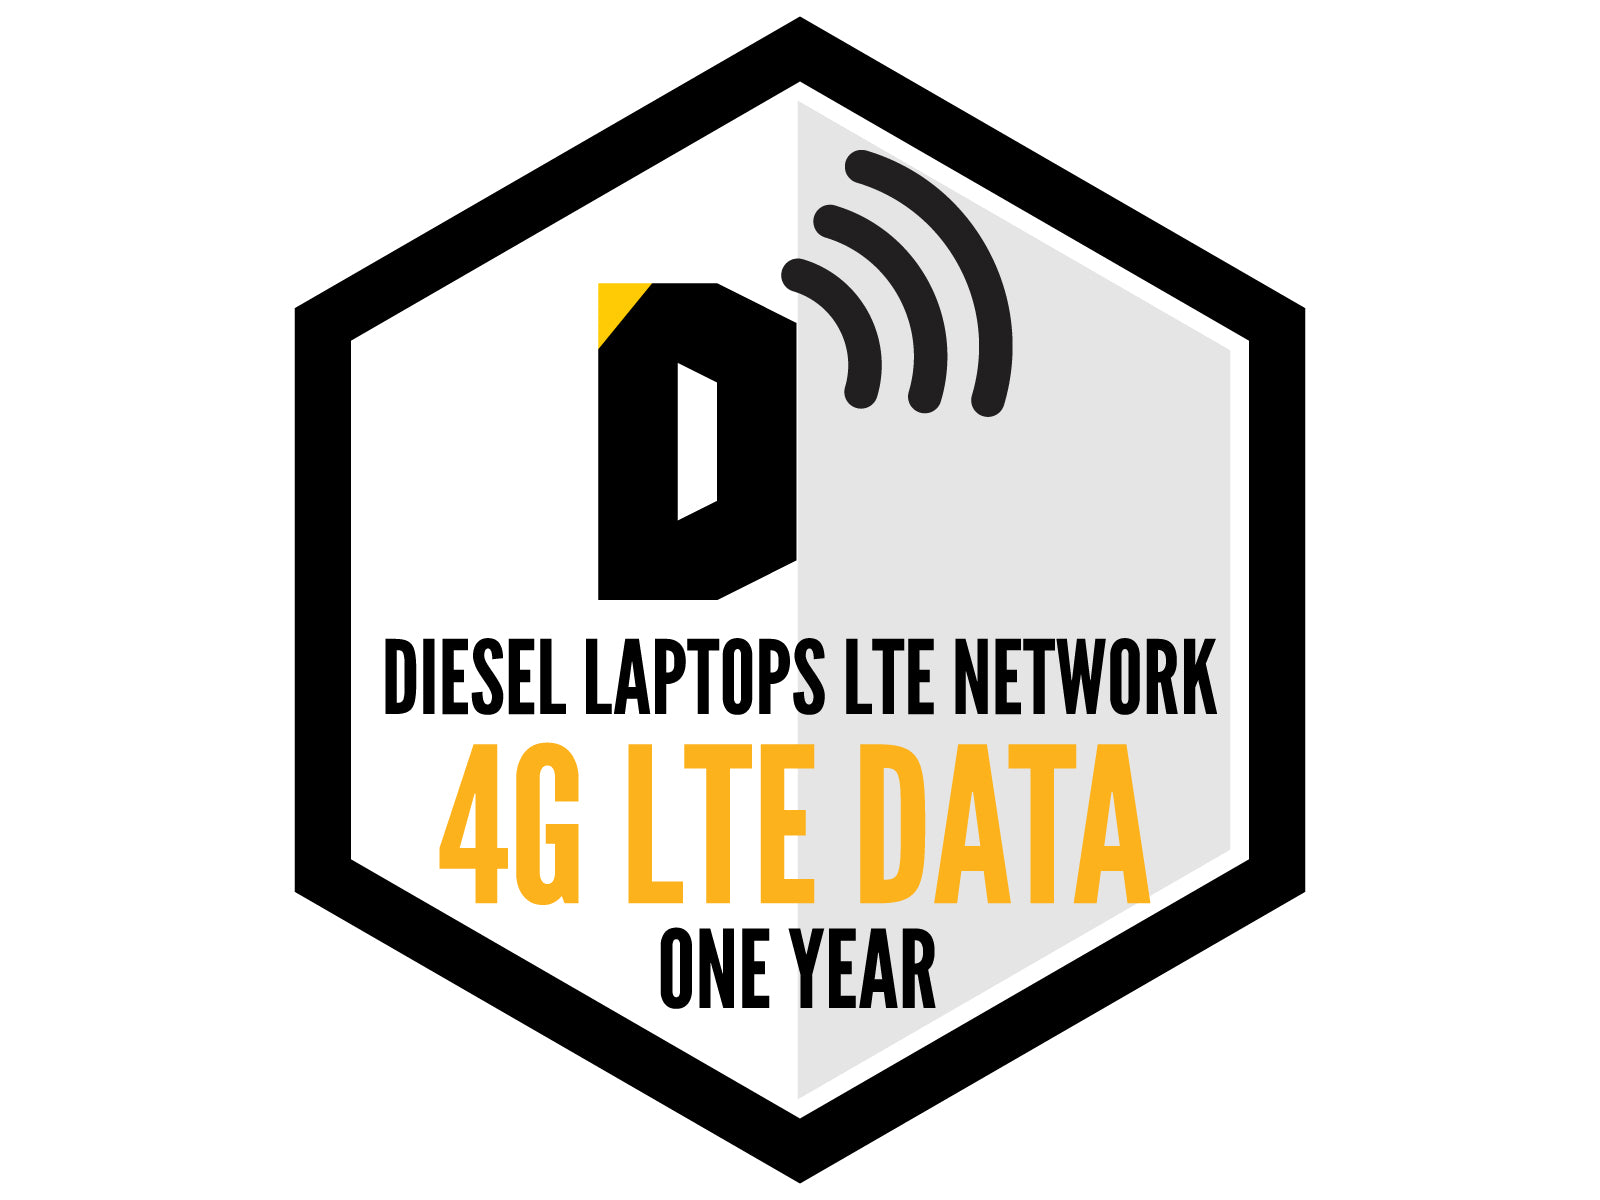 Diesel Laptops LTE Network 4G LTE Unlimited Data 365 Days